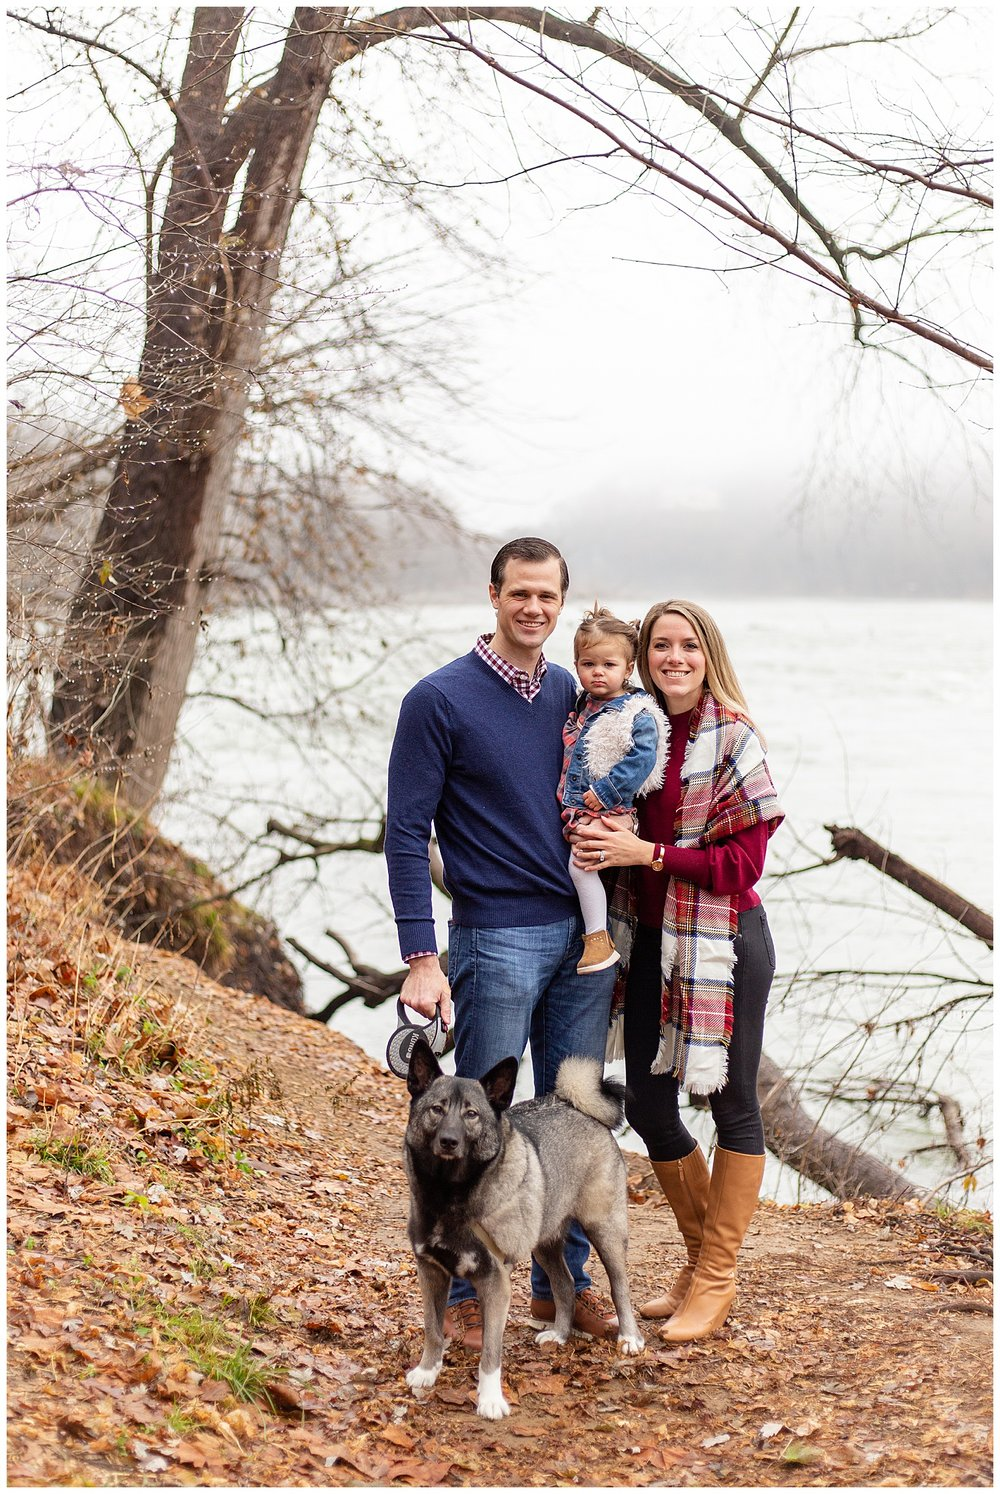 dc-fall-family-photos-emily-belson-photography-01.jpg